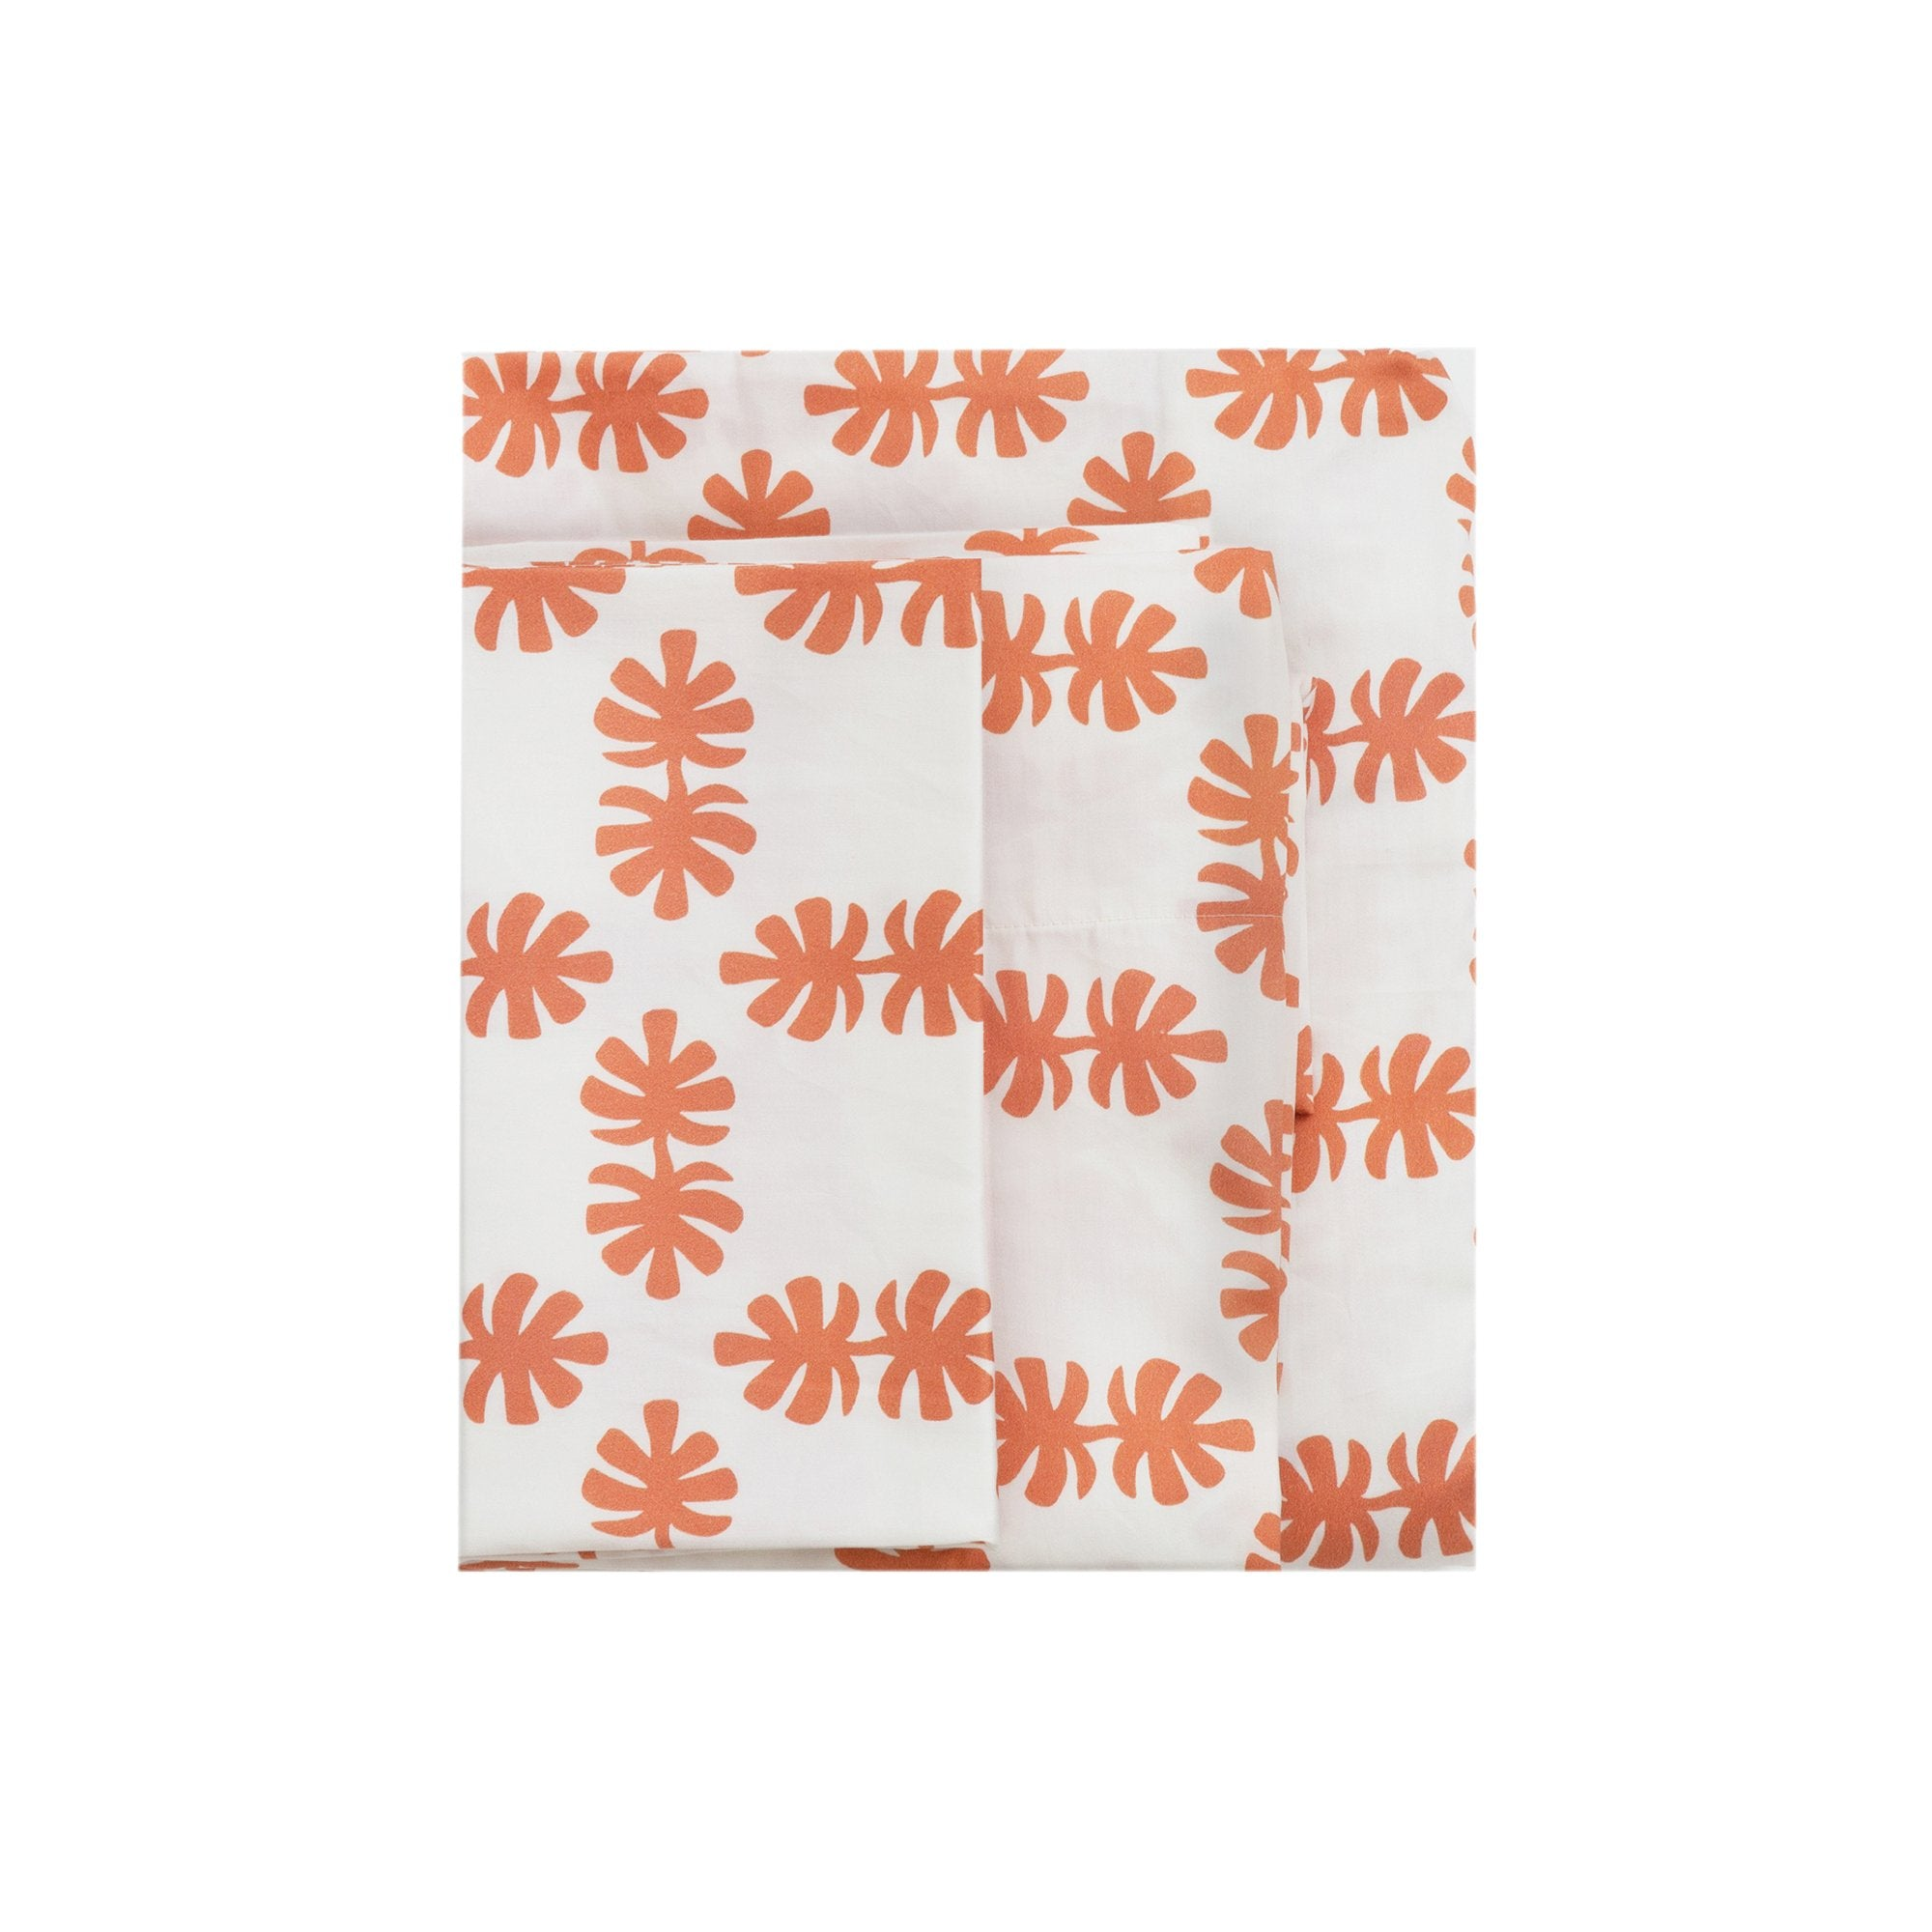 Kikau's Coral Orange Coconut Palm kids sheet set on white background